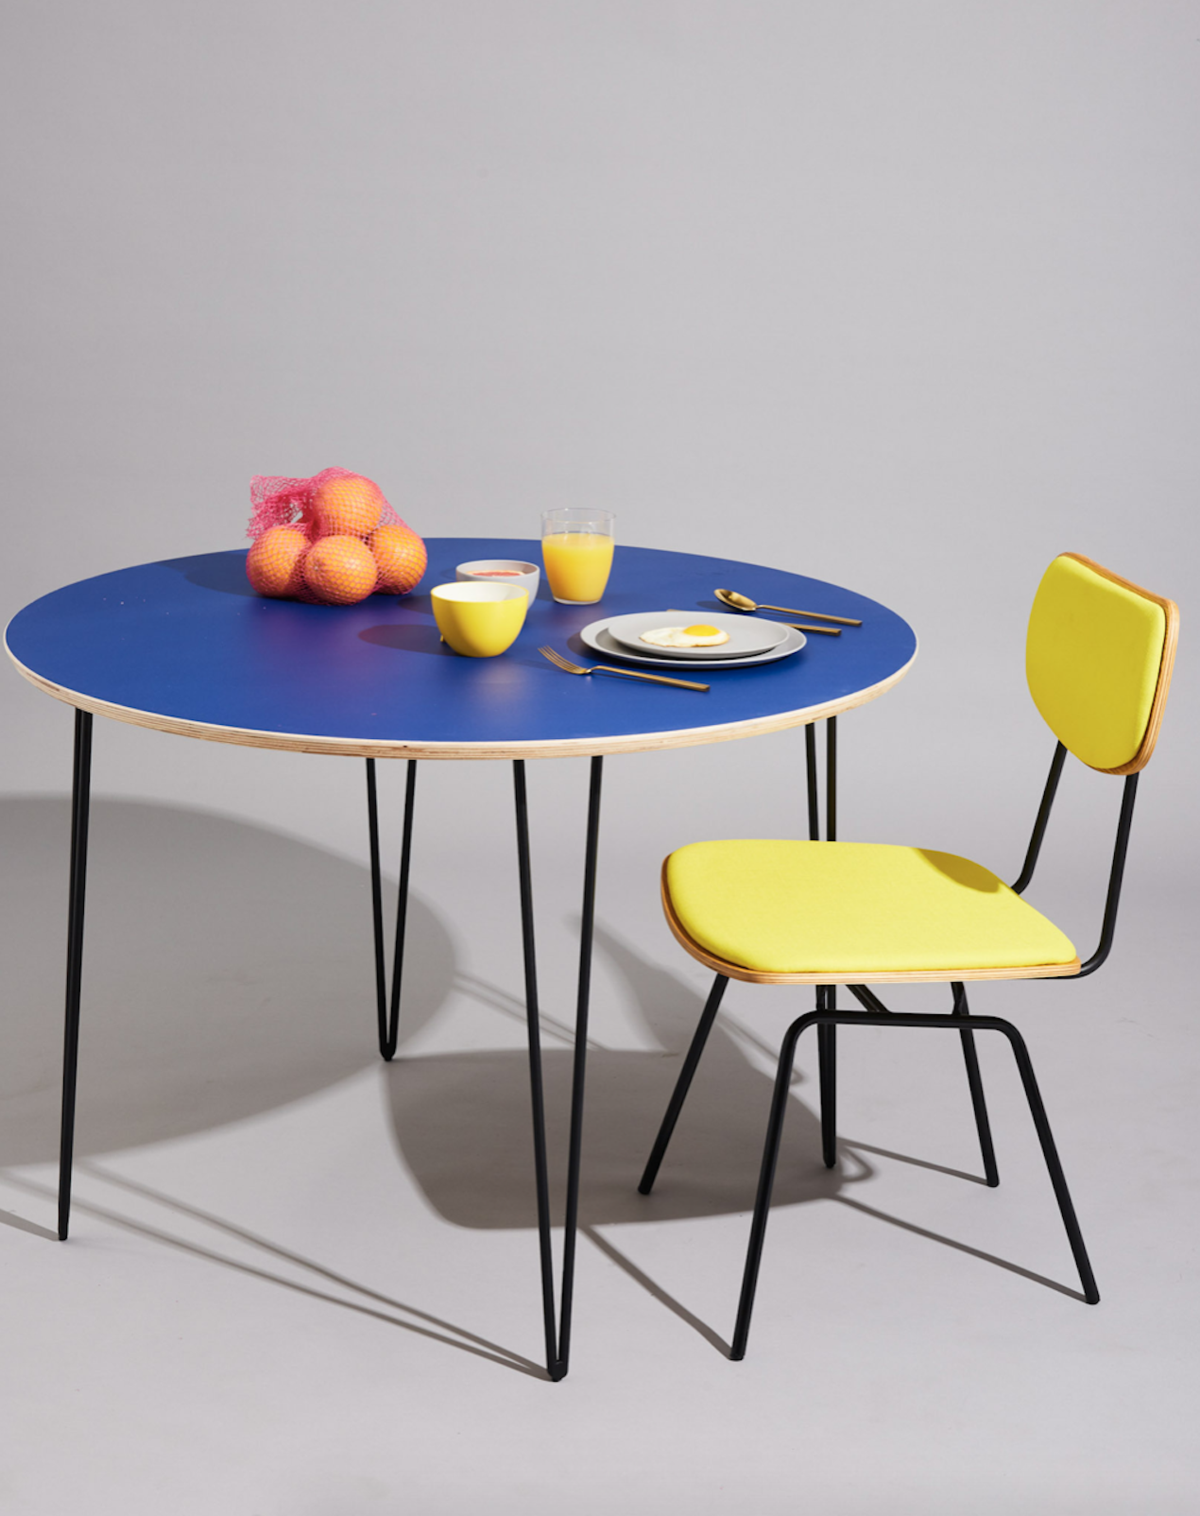 The Kobe dining chair from Inside Weather in Vibrant Yellow